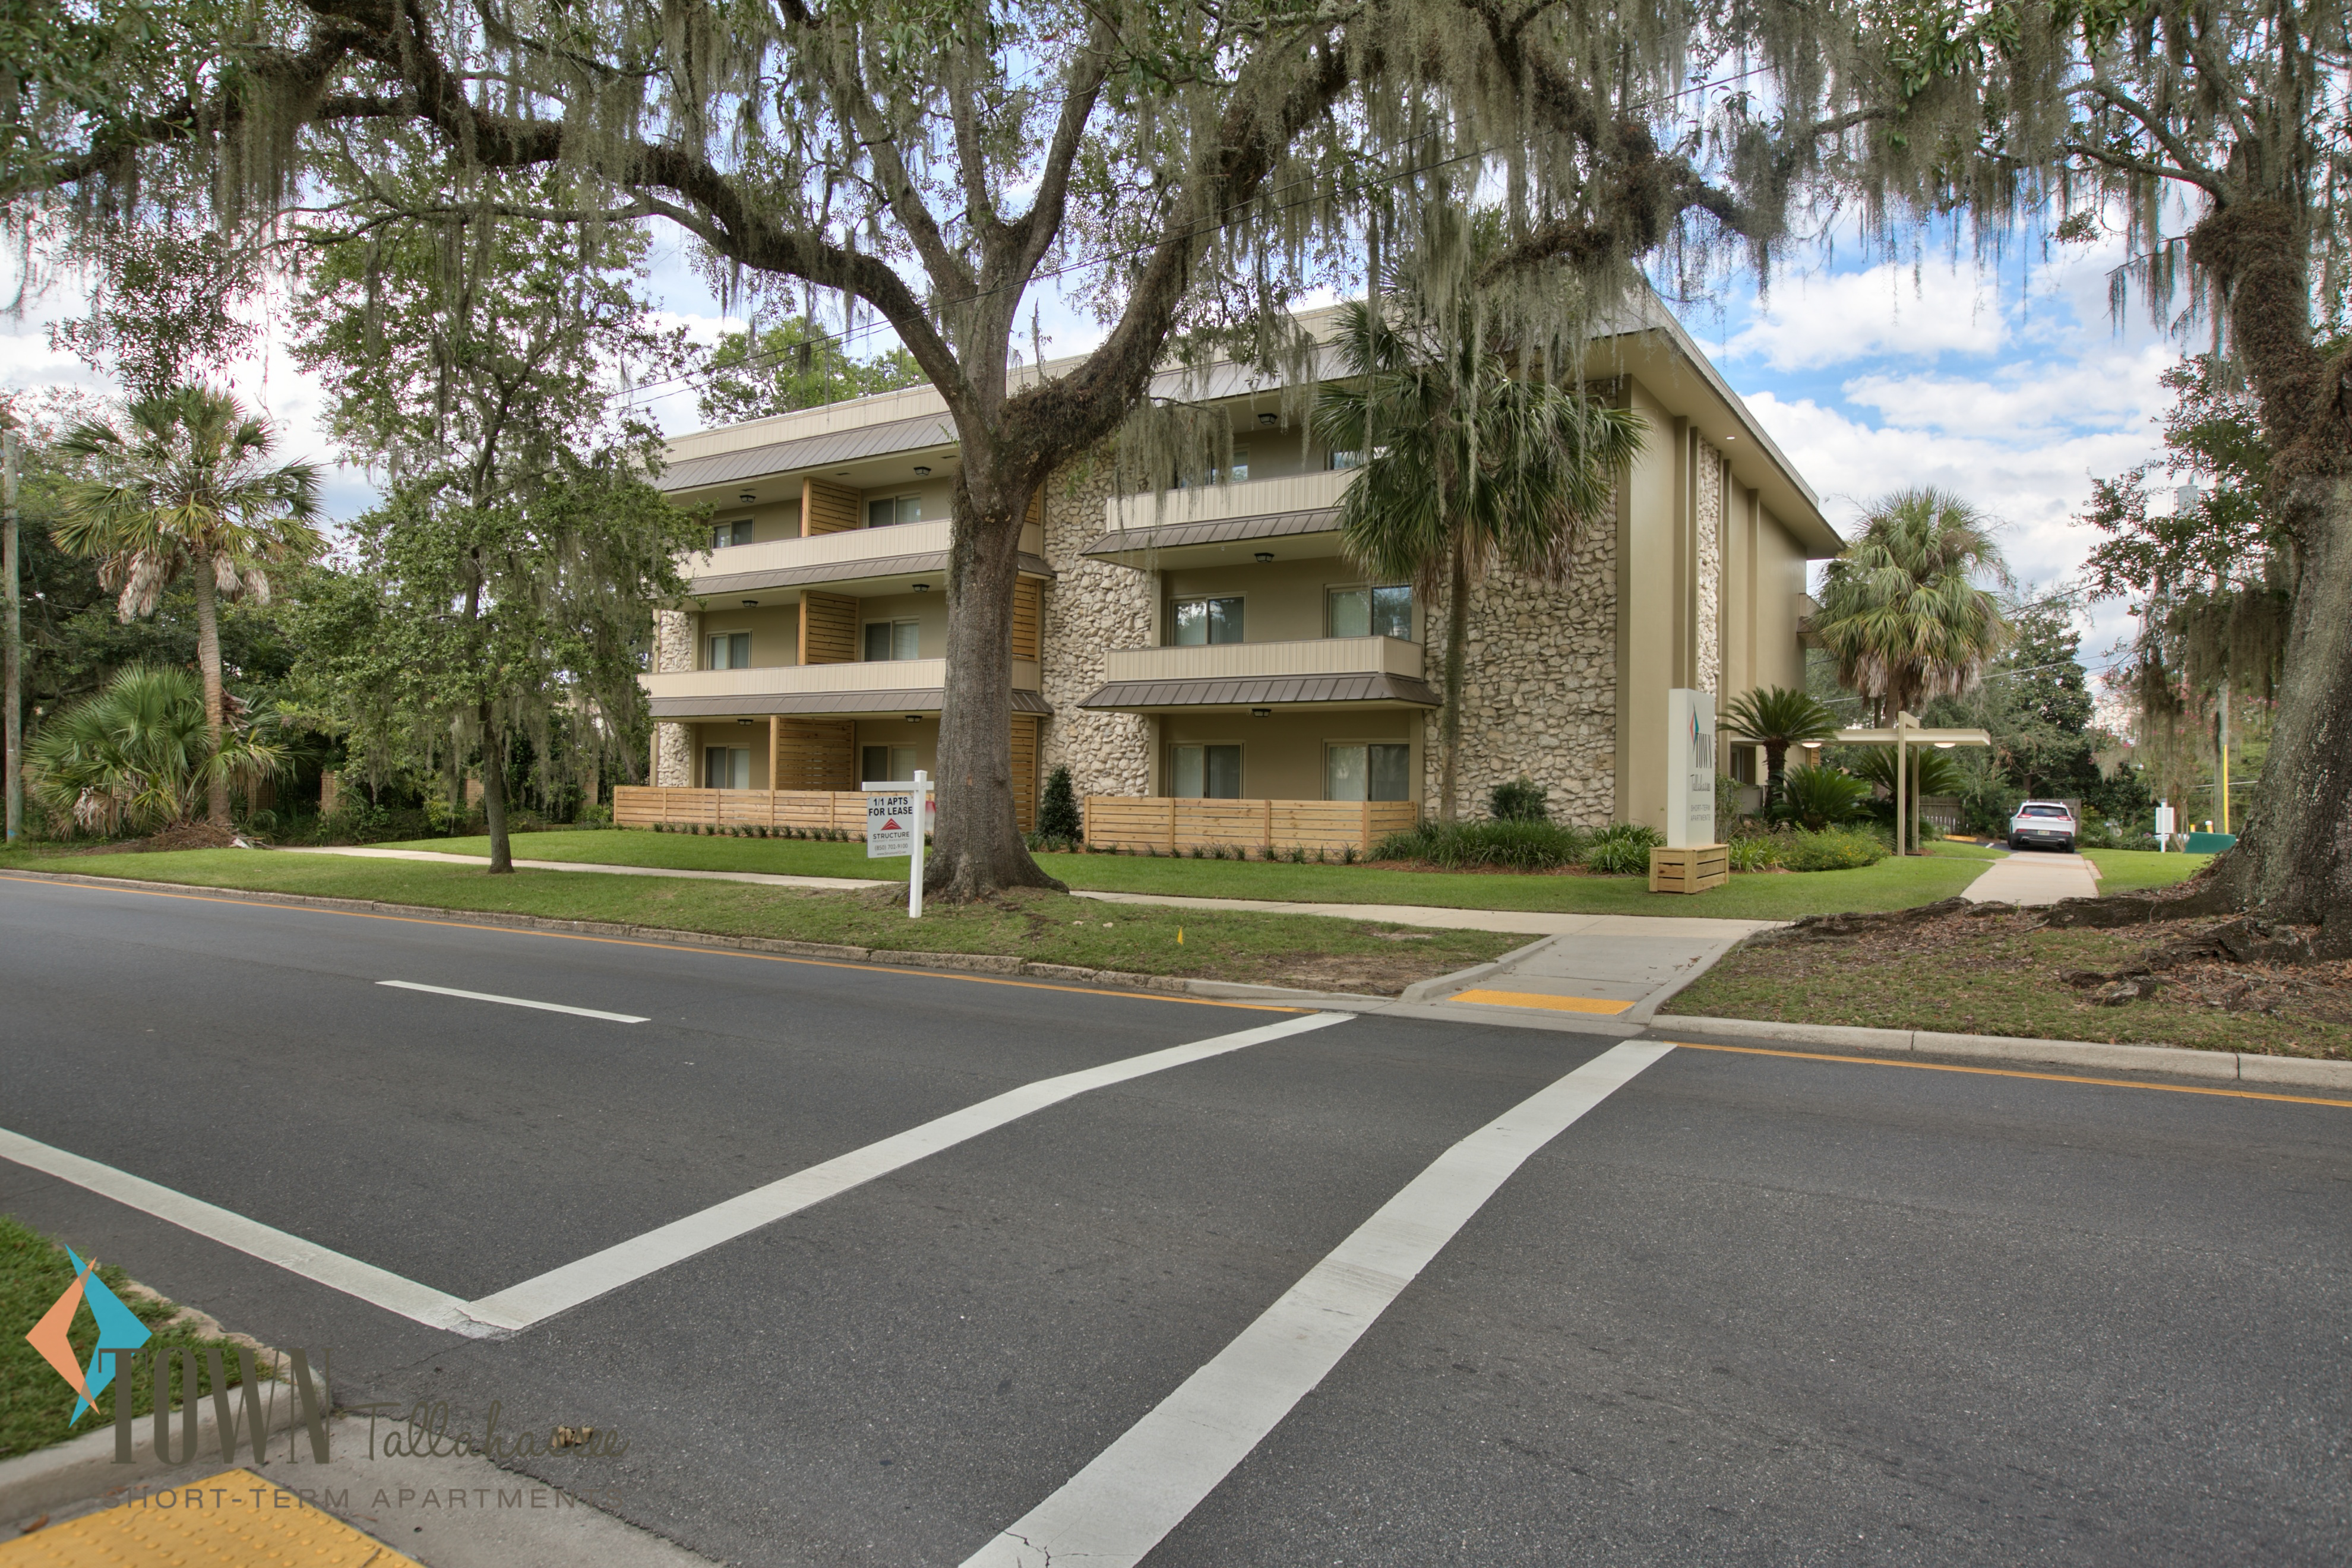 town term management core apartments tallahassee bedroom one short property rental